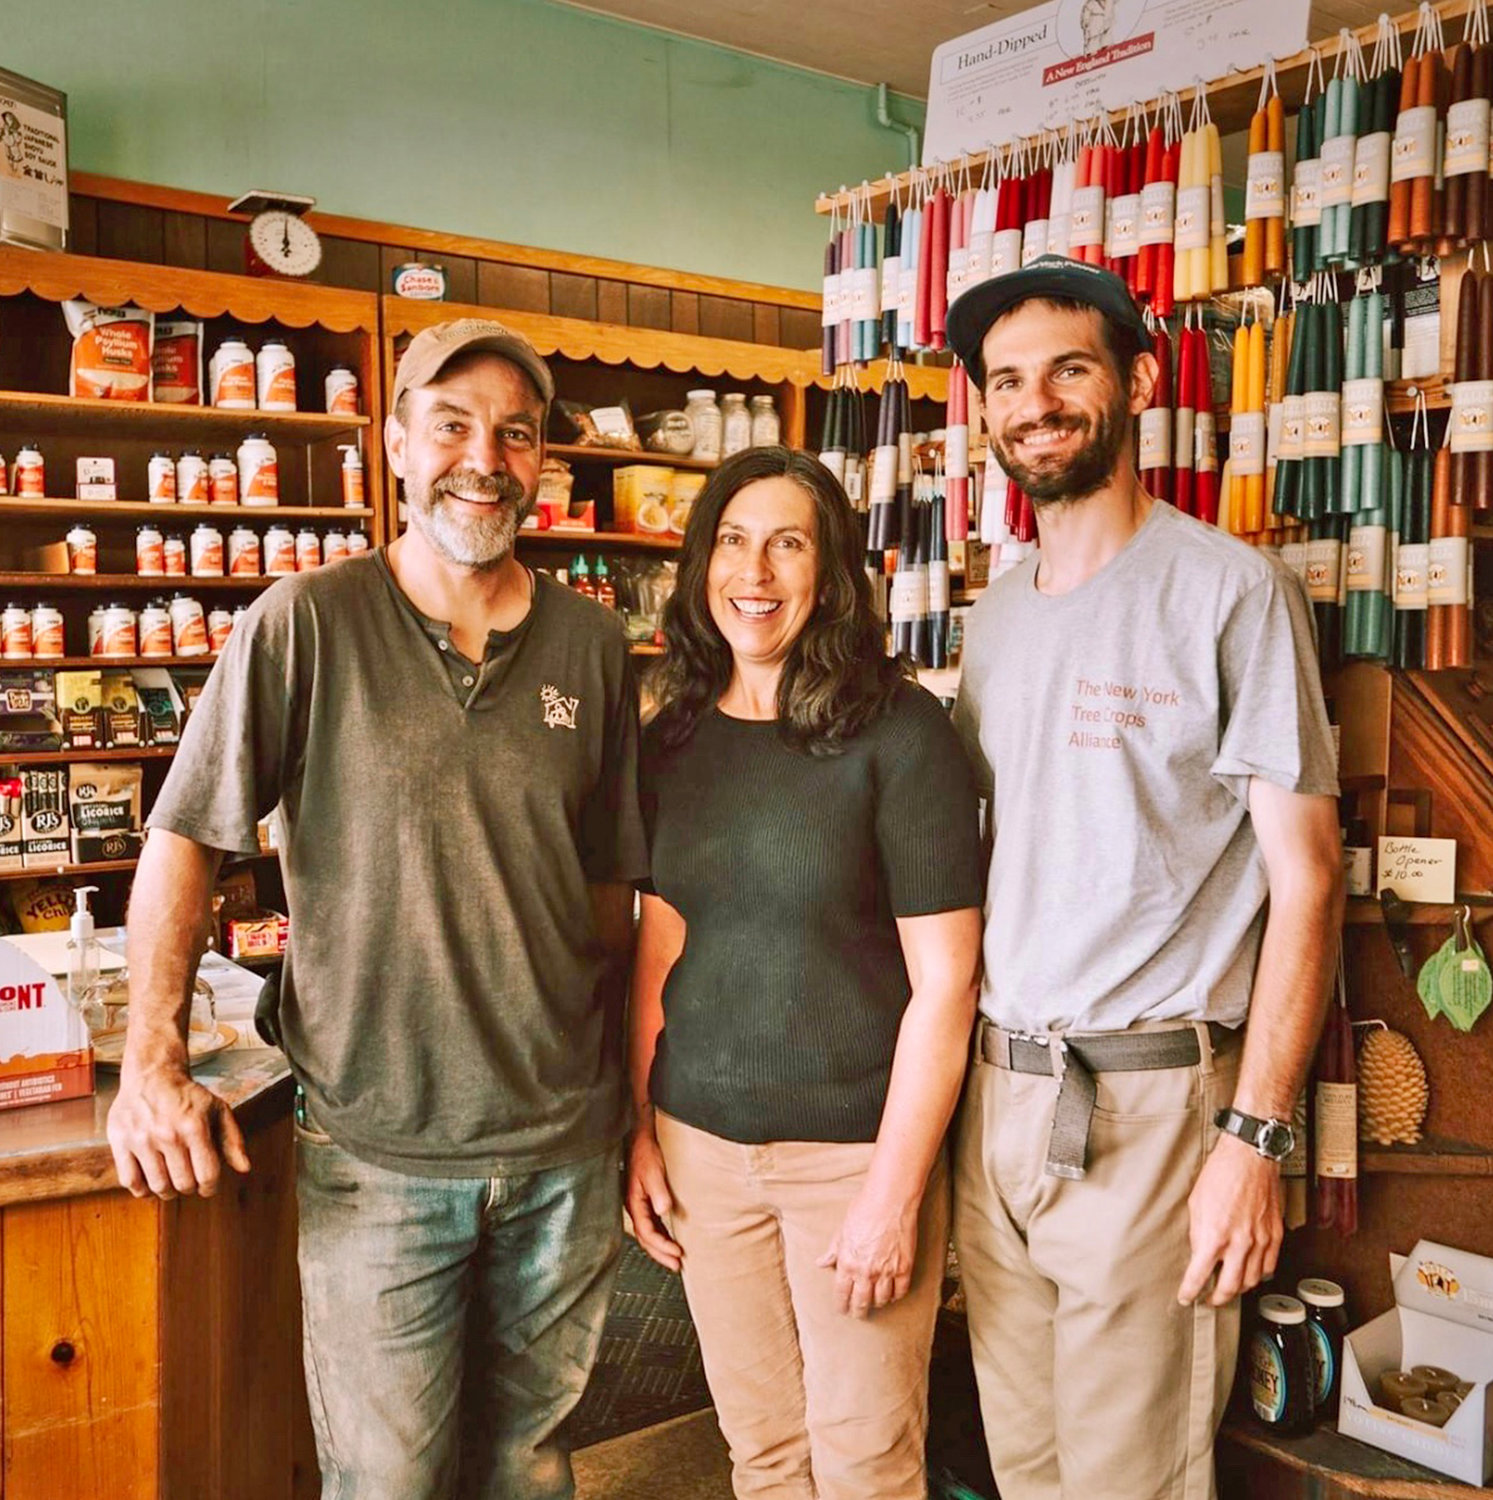 HELLO CLINTON — The new owners of Tom's Natural Food welcome new customers as well as previous friends to a second generation of what Tom Bell and Bonnie Wood offrred the Clinton community for 48 years. Pictured left to right: Jason Townsend, Nancy Morelle and Andrew Sblendorio.